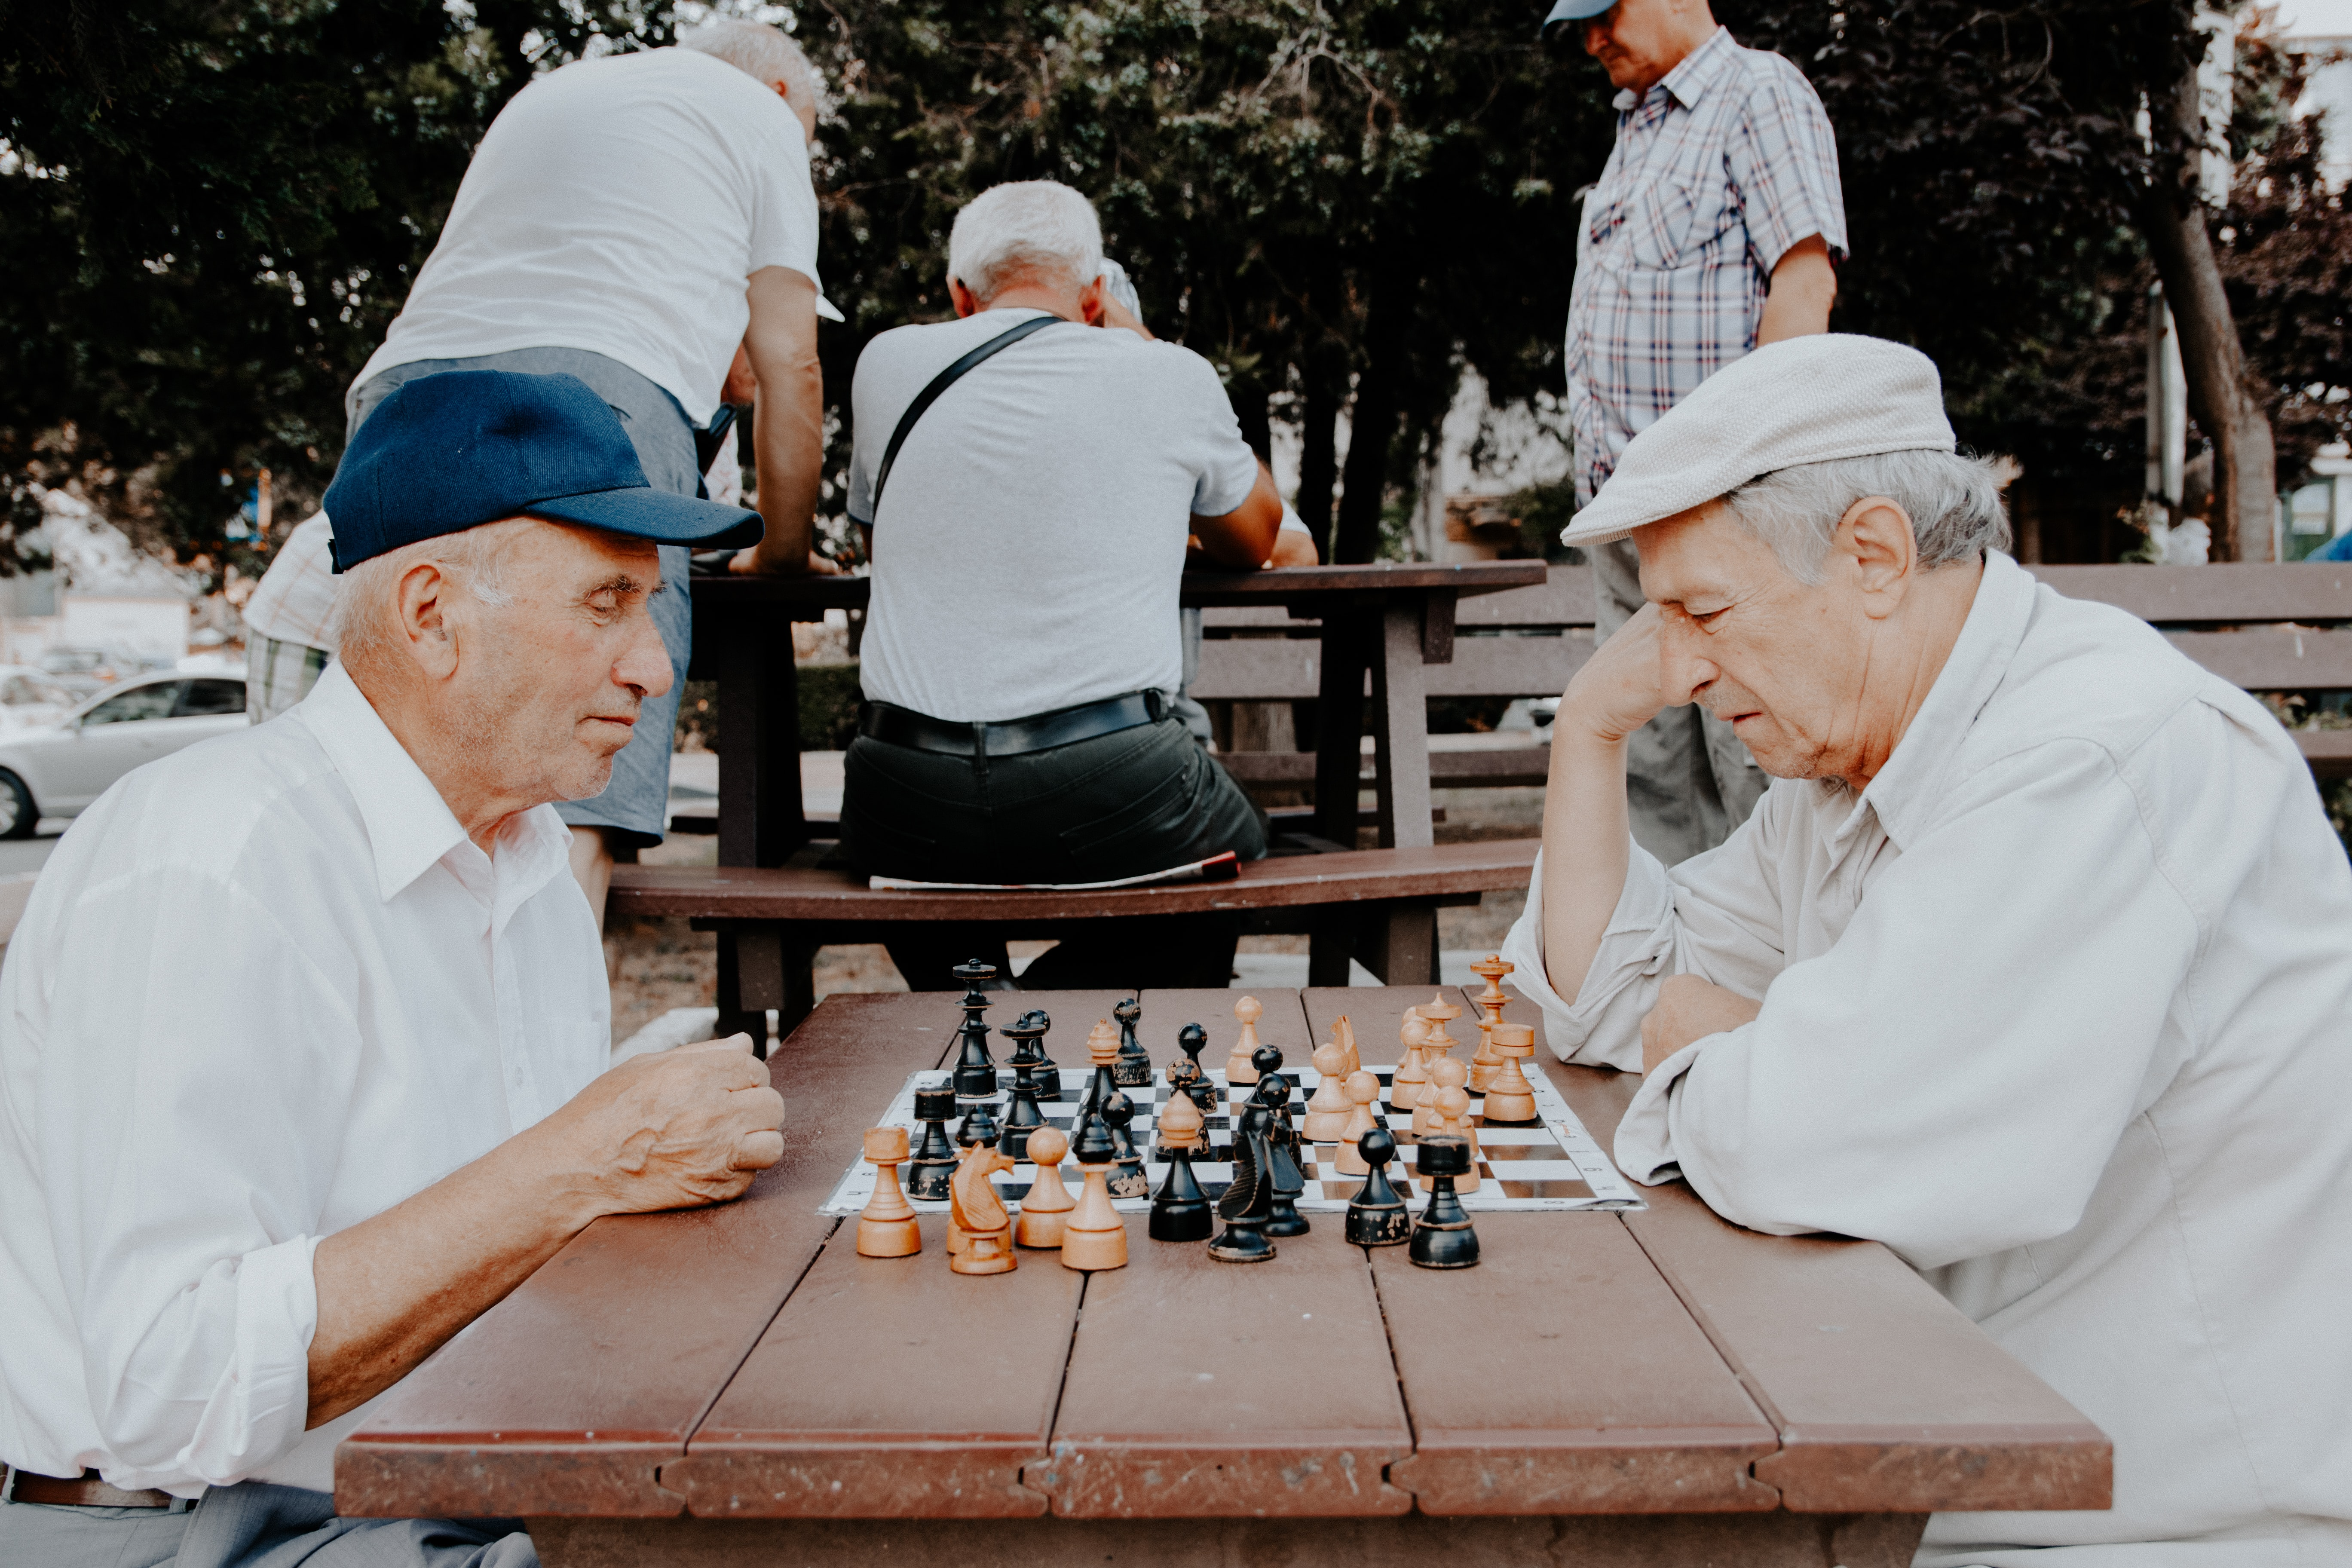 The Top 5 New Hobbies for The Elderly In 2021